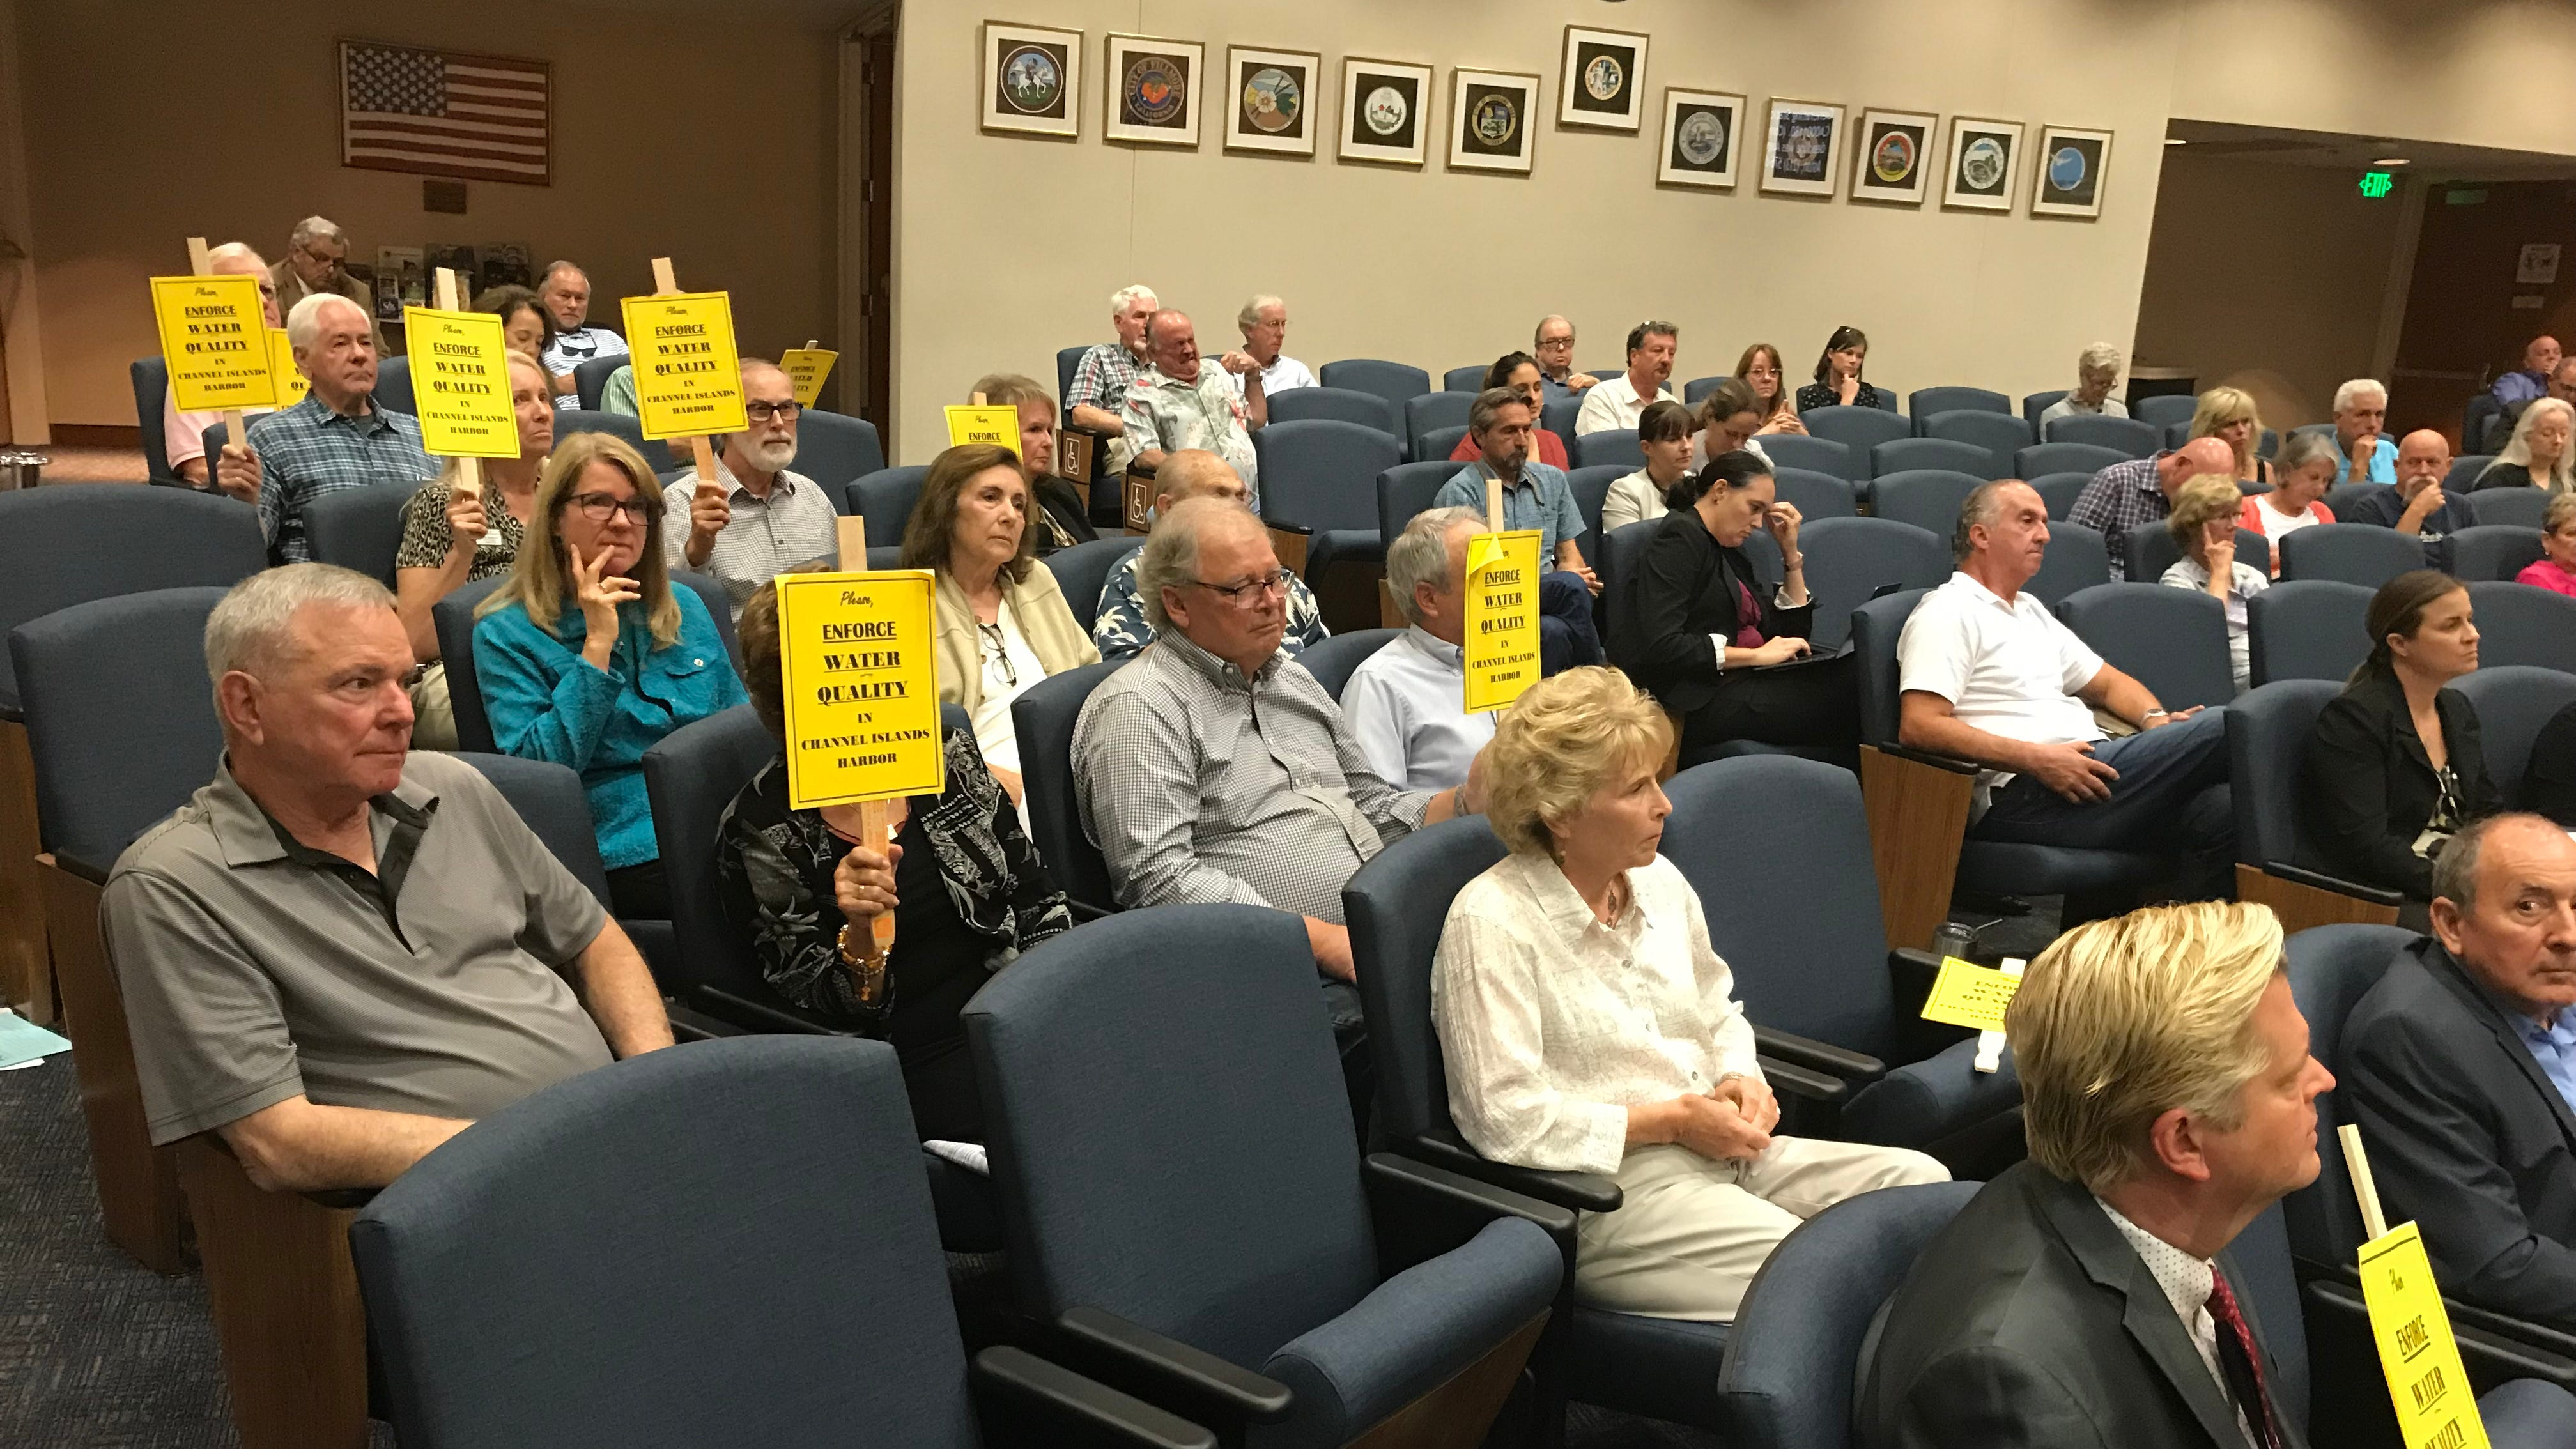 Oxnard leaders, residents can't convince state board to delay Mandalay power plant vote